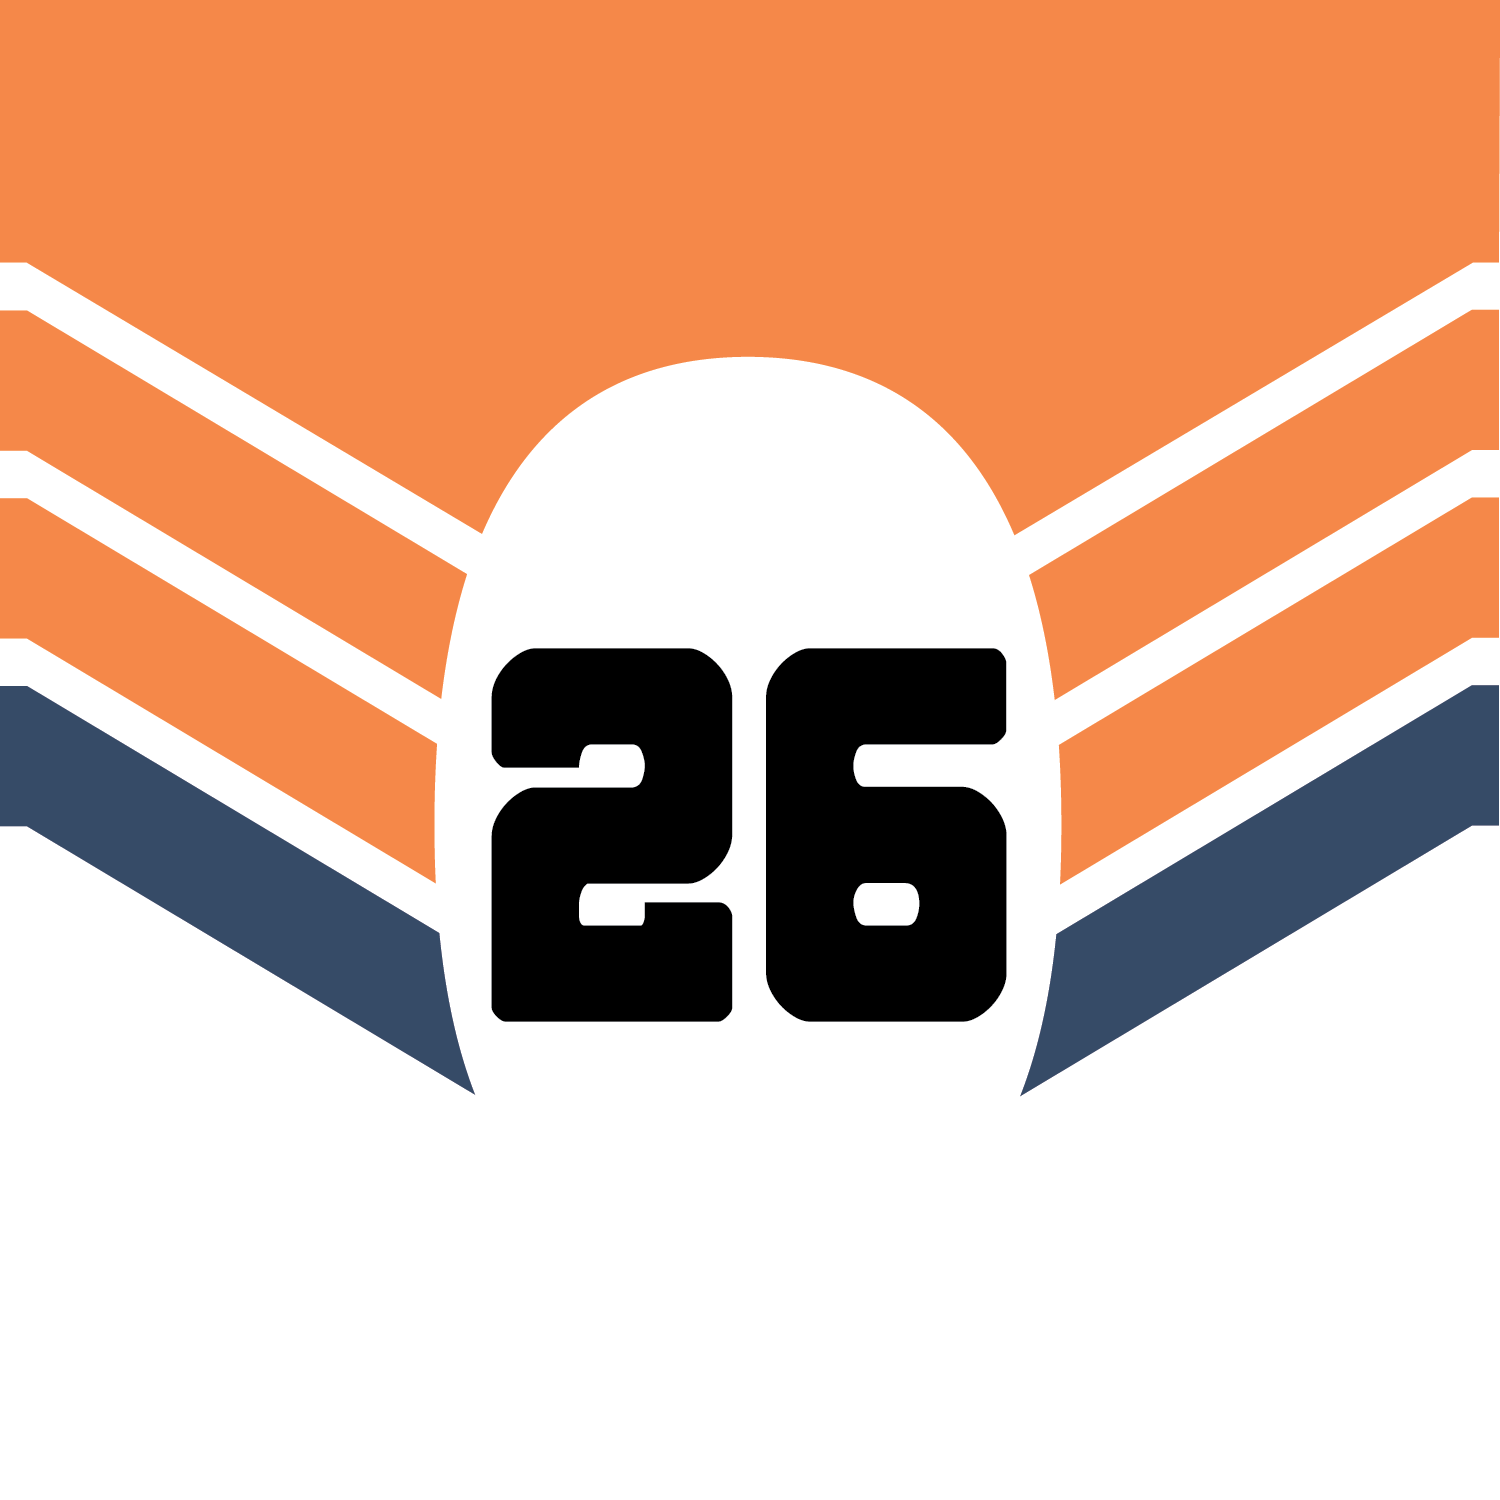 26-01.png